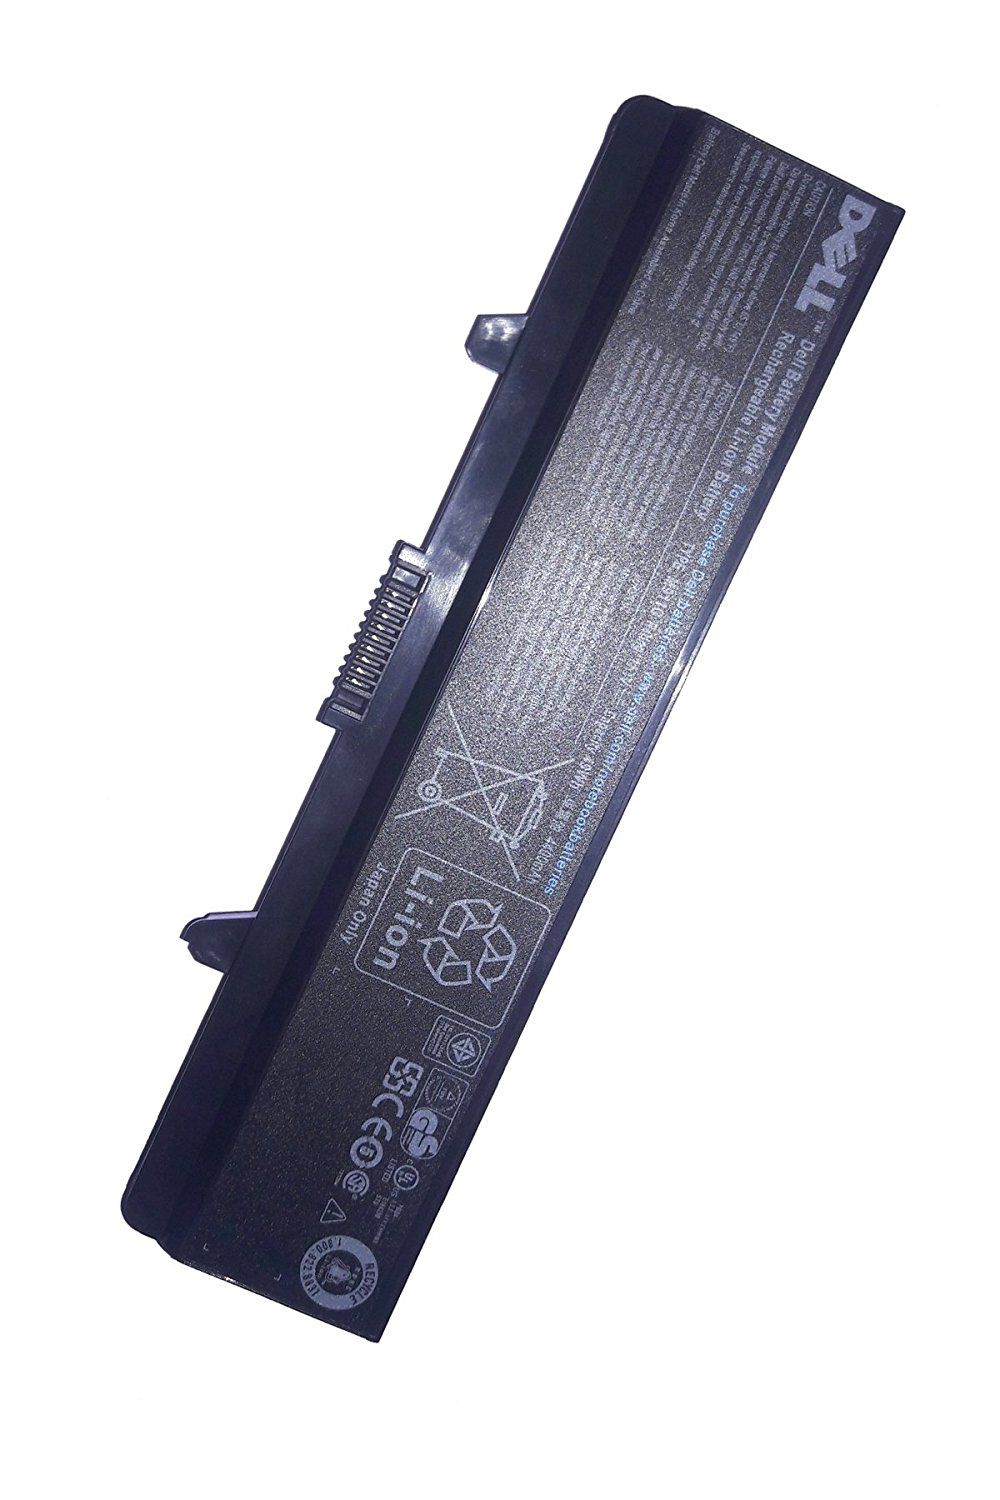 Dell Inspiron 1525, 1526, 1545 Original Laptop Battery Of The Model X284G, Y823G, K450N, G558N With 4200 Mah